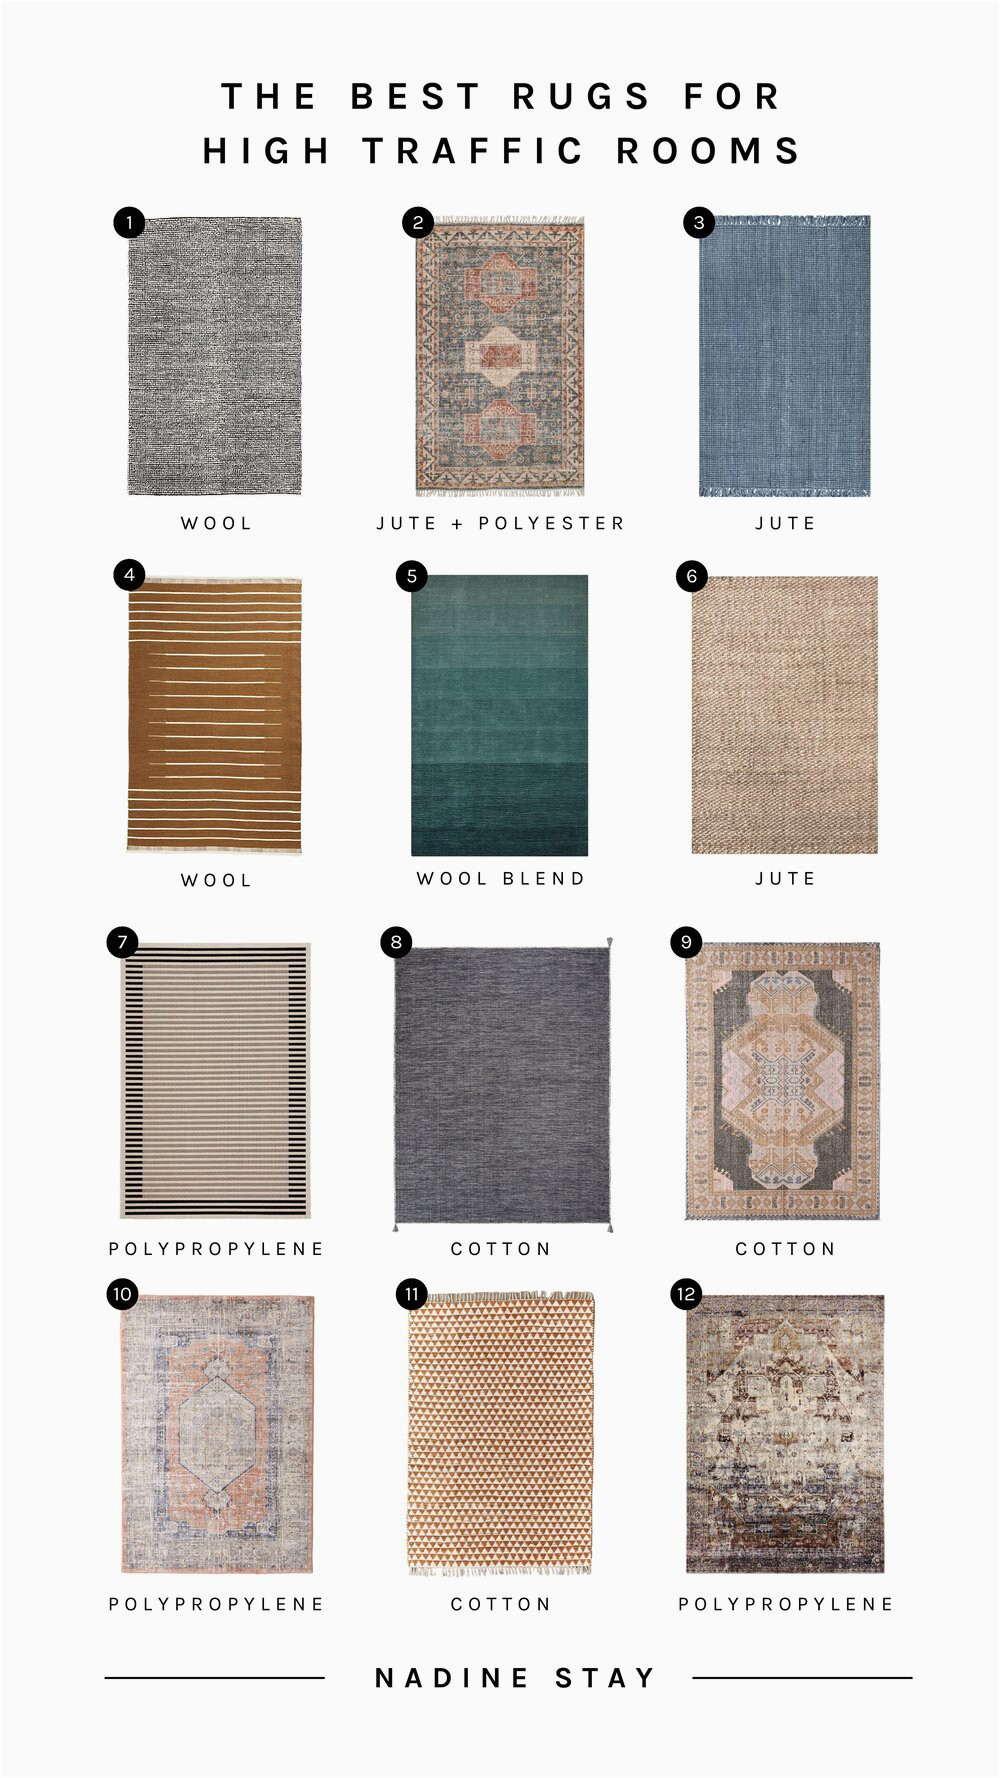 Area Rugs for High Traffic areas the Best Worst Rugs for High Traffic areas